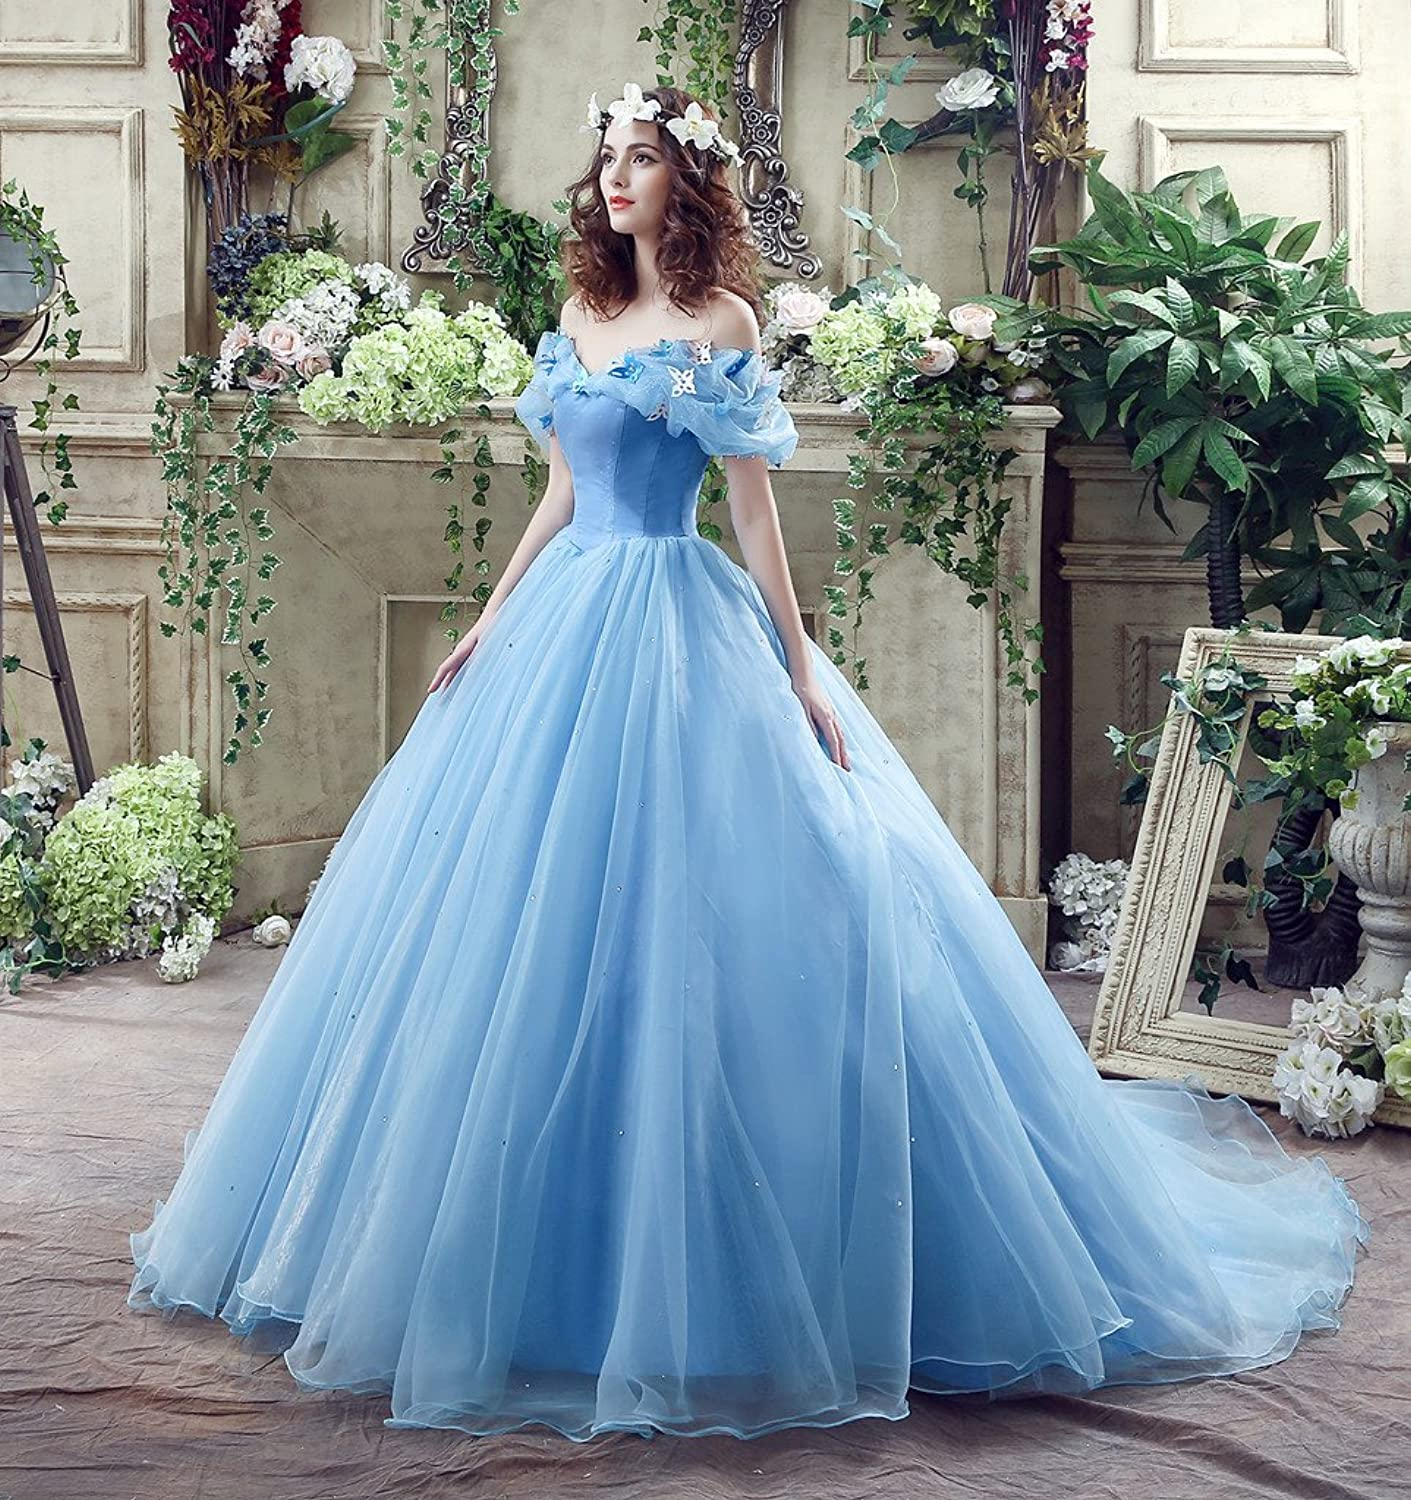 PGS Women\'s Bridal Gowns Butterfly Sweet 15 Quinceanera Wedding ...